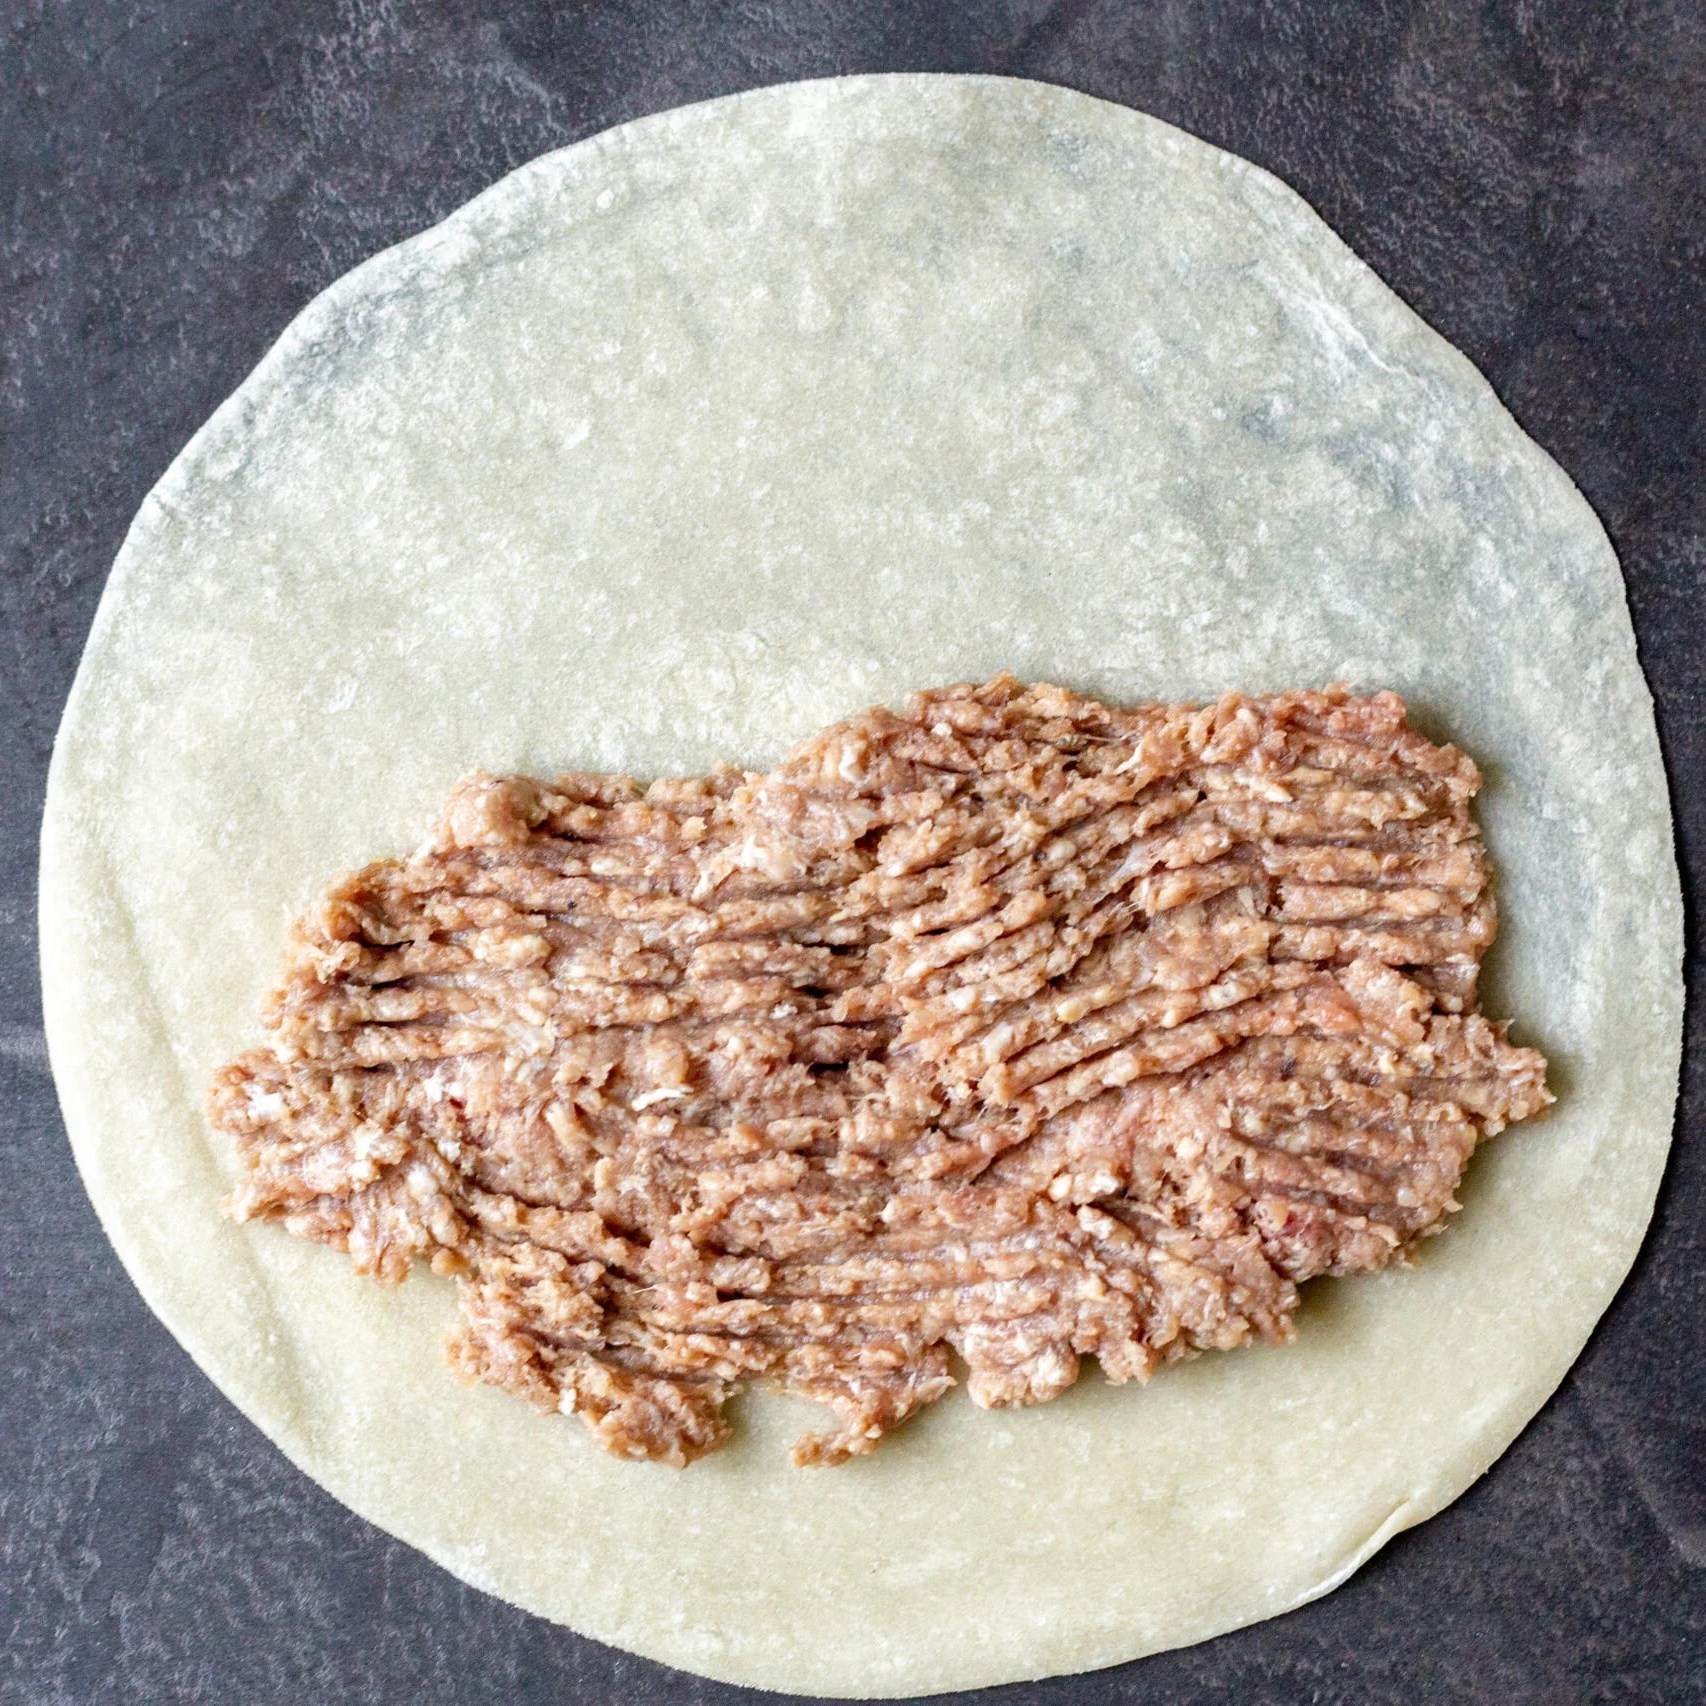 Tortilla filled with meat